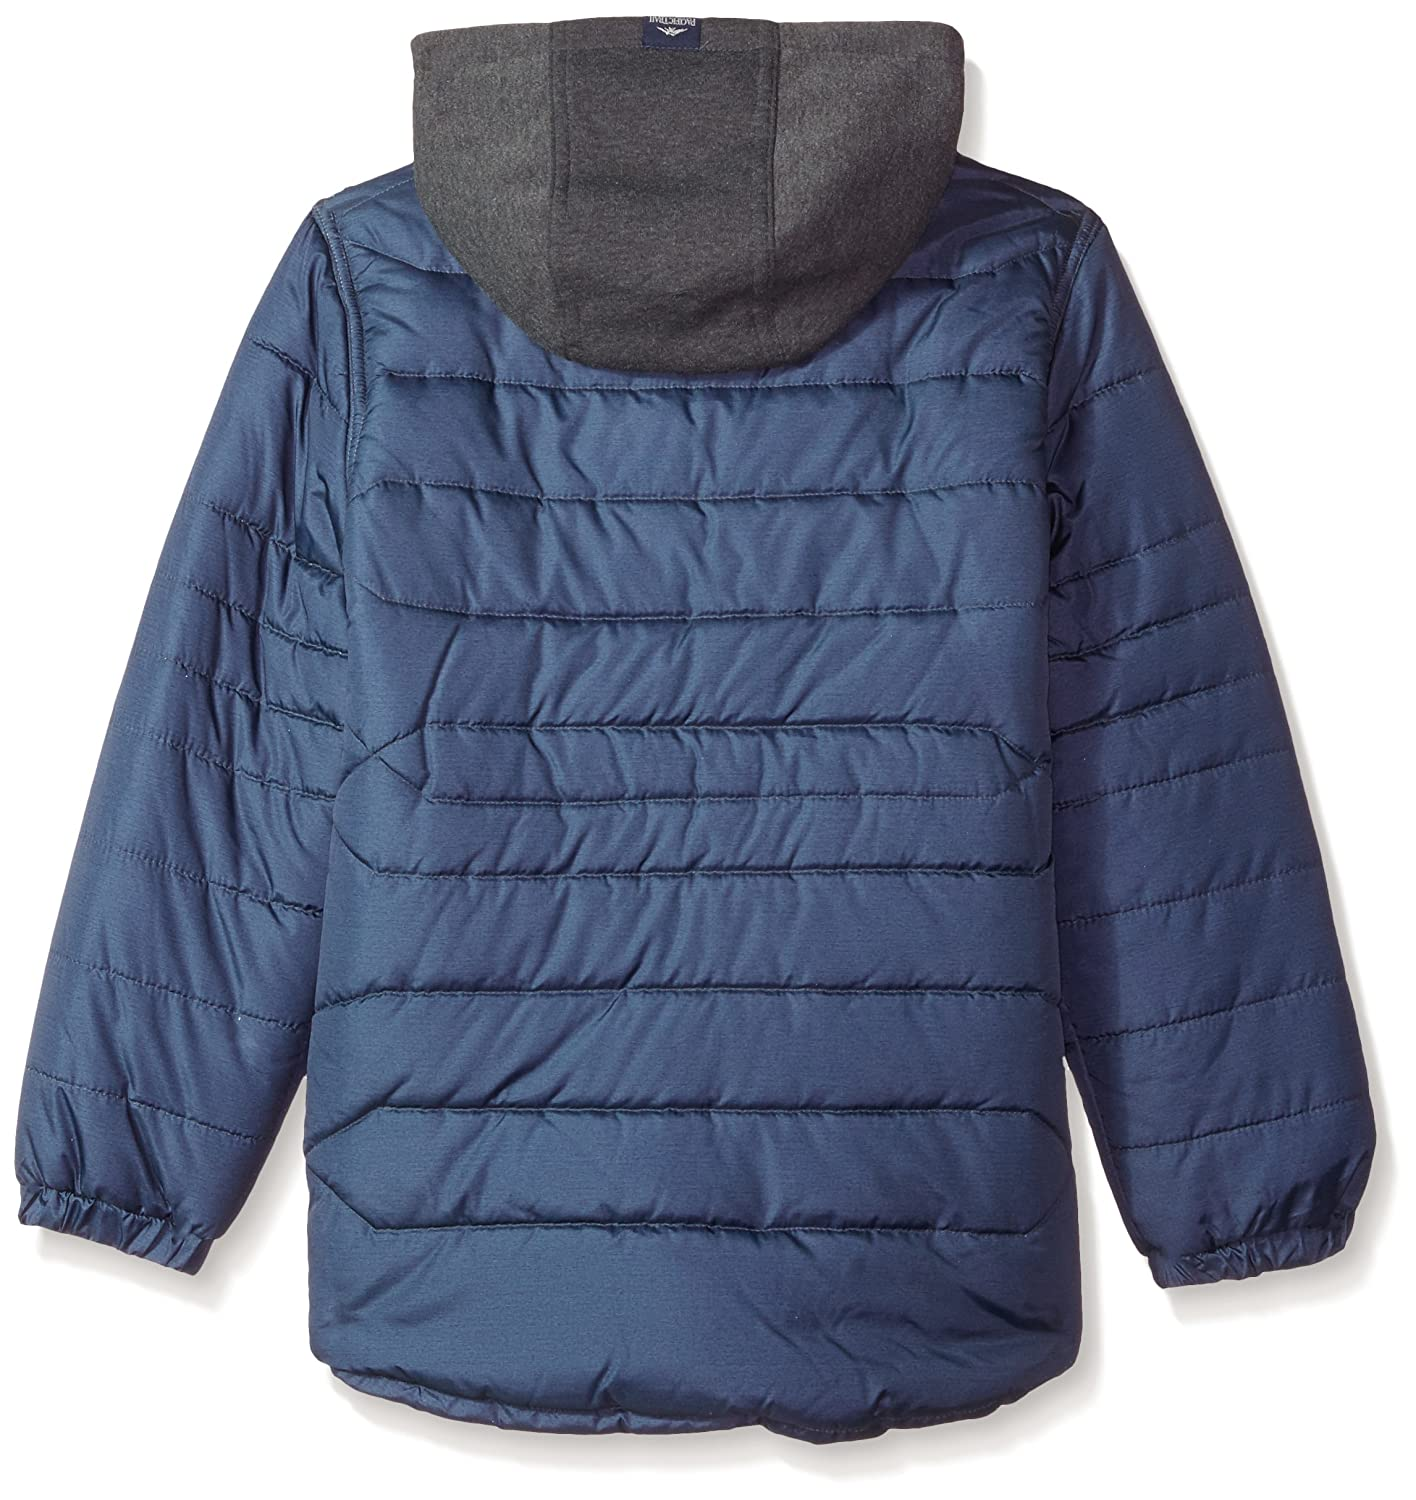 269a84a63 Amazon.com  Pacific Trail Boys Heathered Puffer Jacket  Clothing